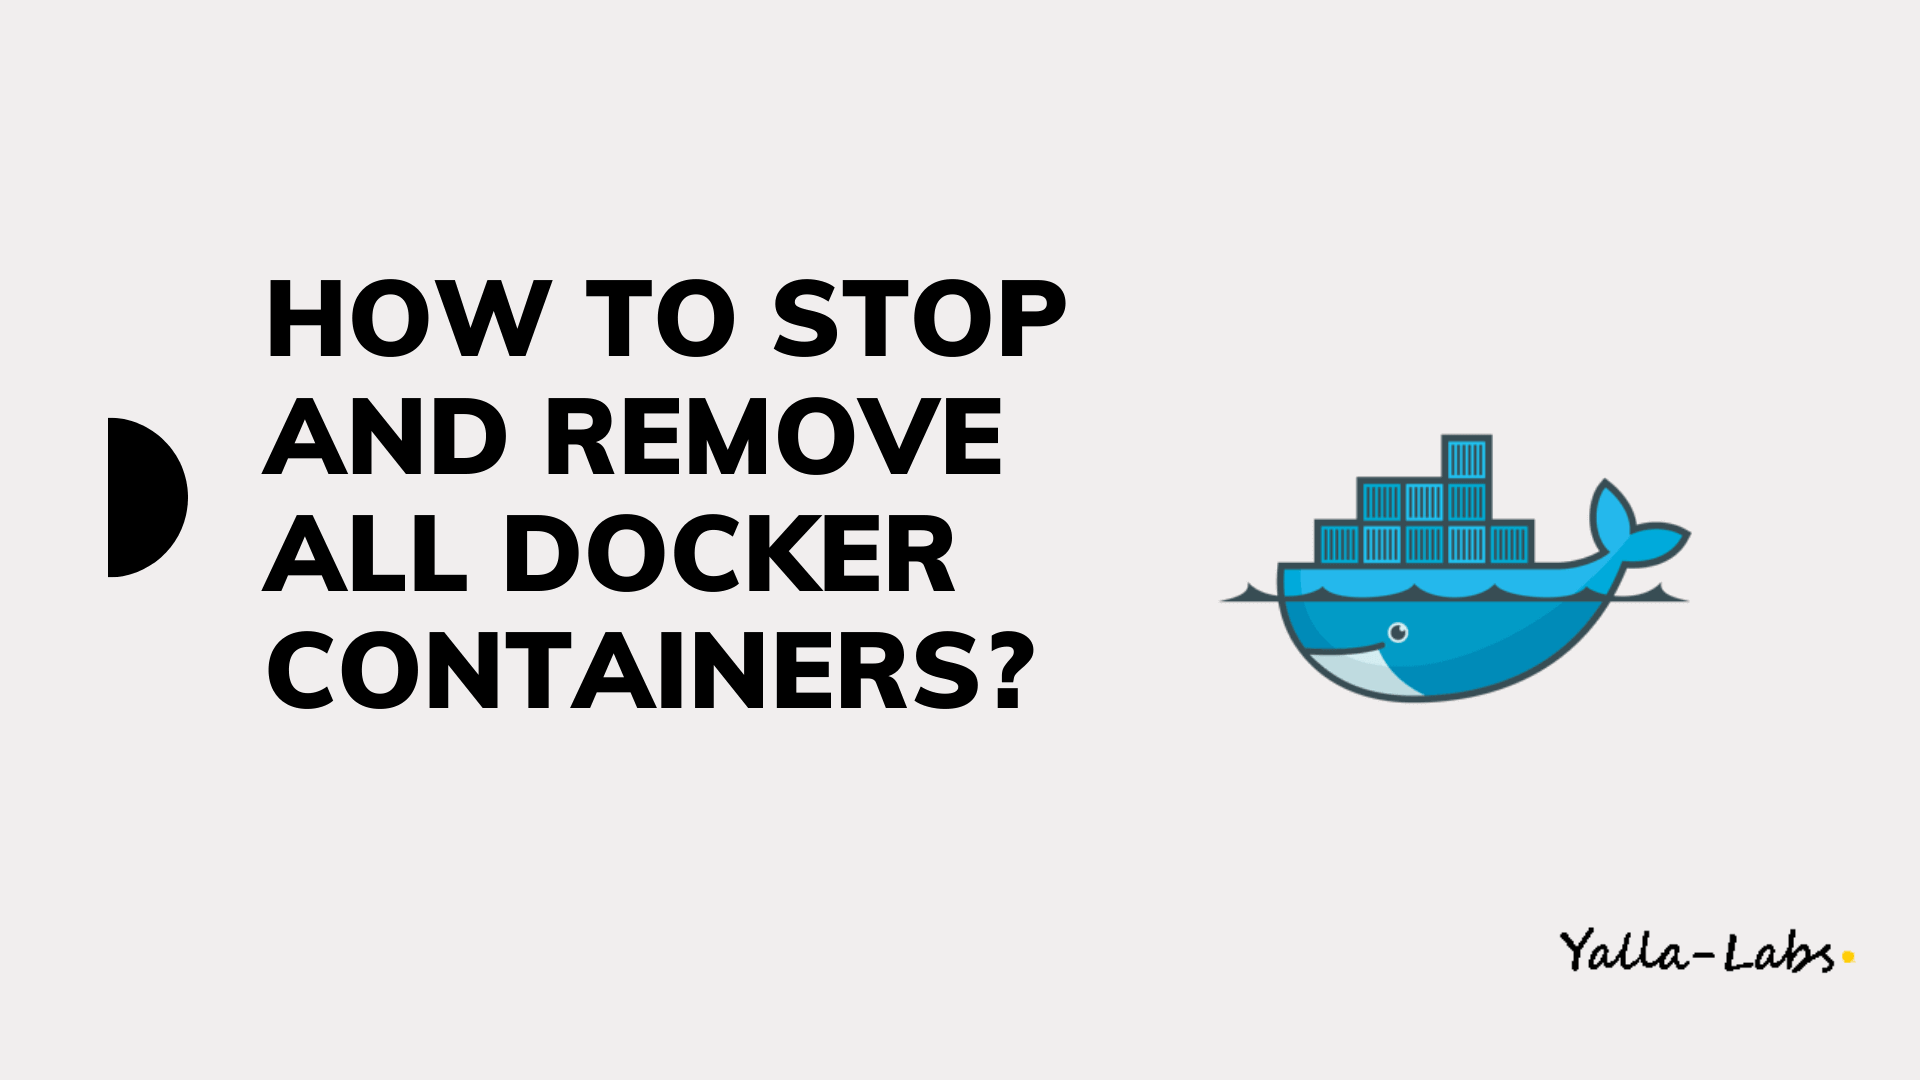 How To Stop And Remove All Docker Containers Yallalabs